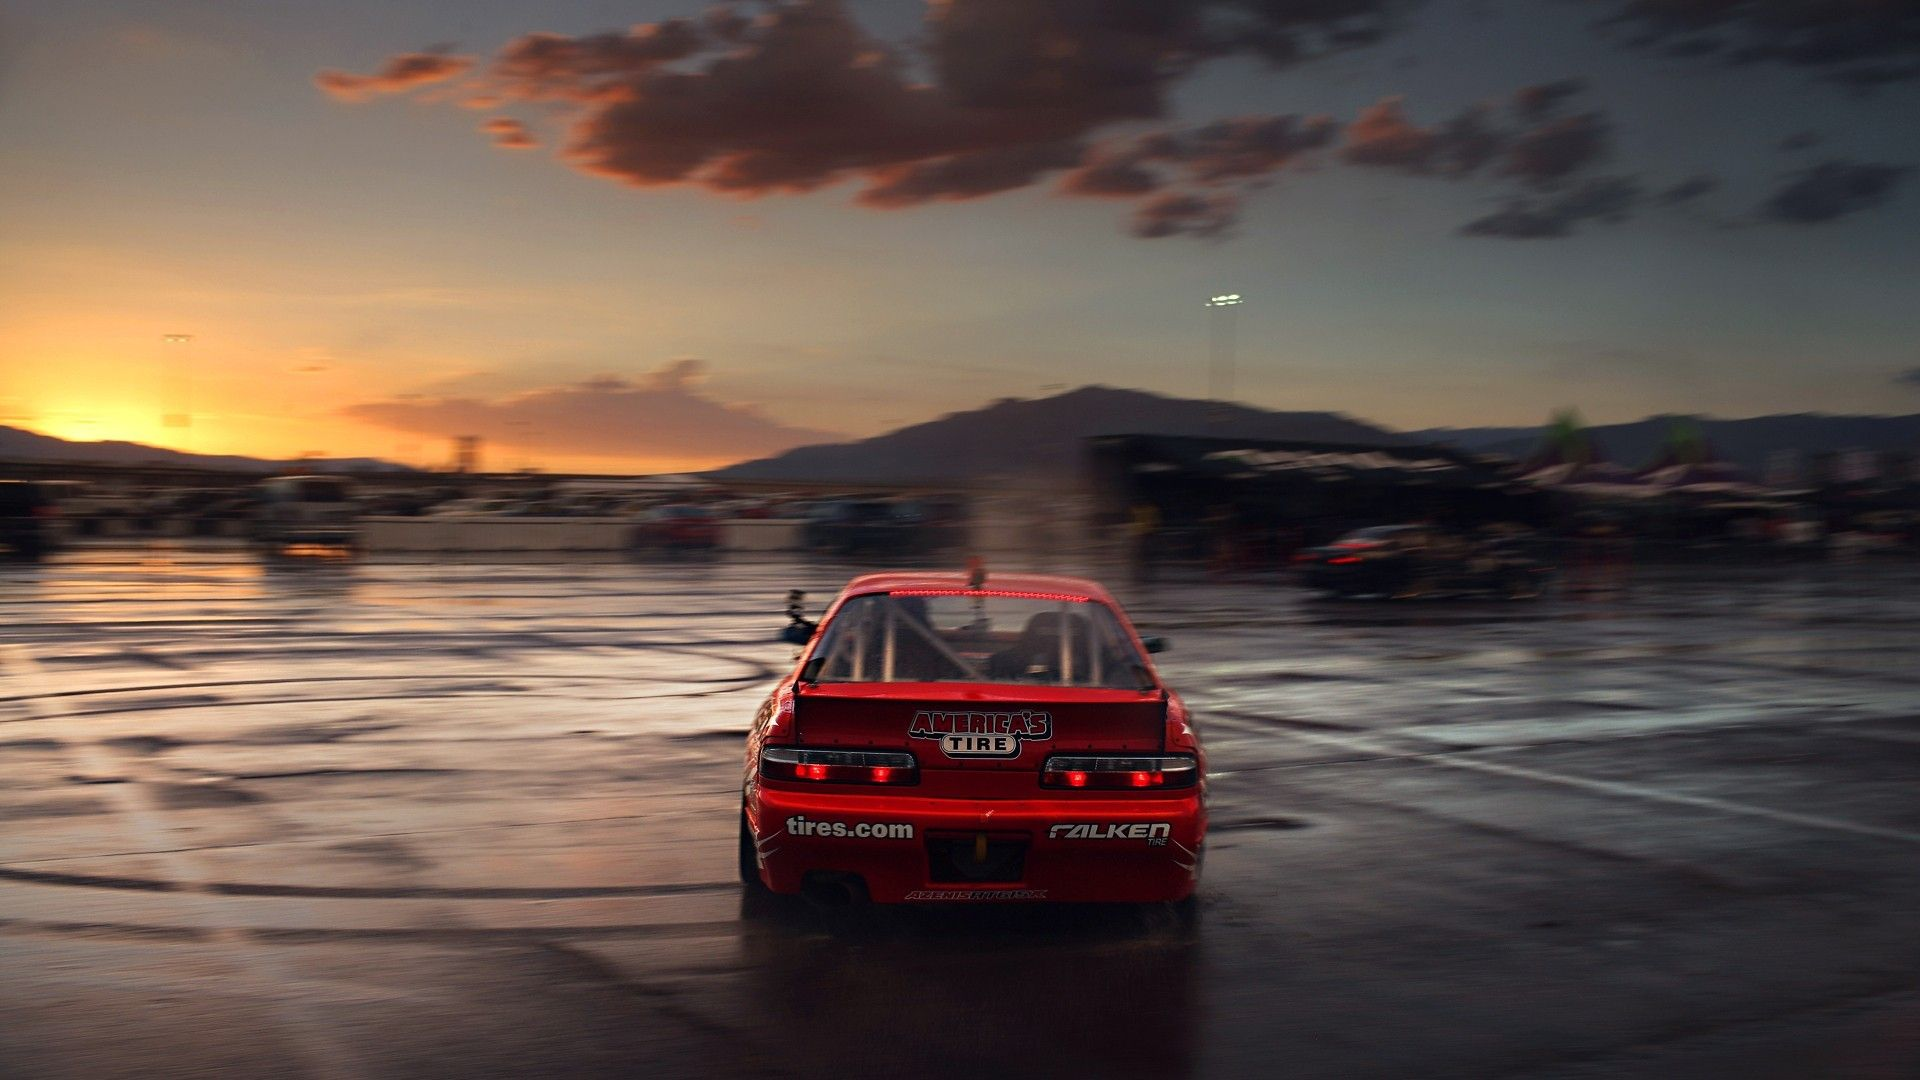 Drifting Wallpapers - Top Free Drifting Backgrounds ...